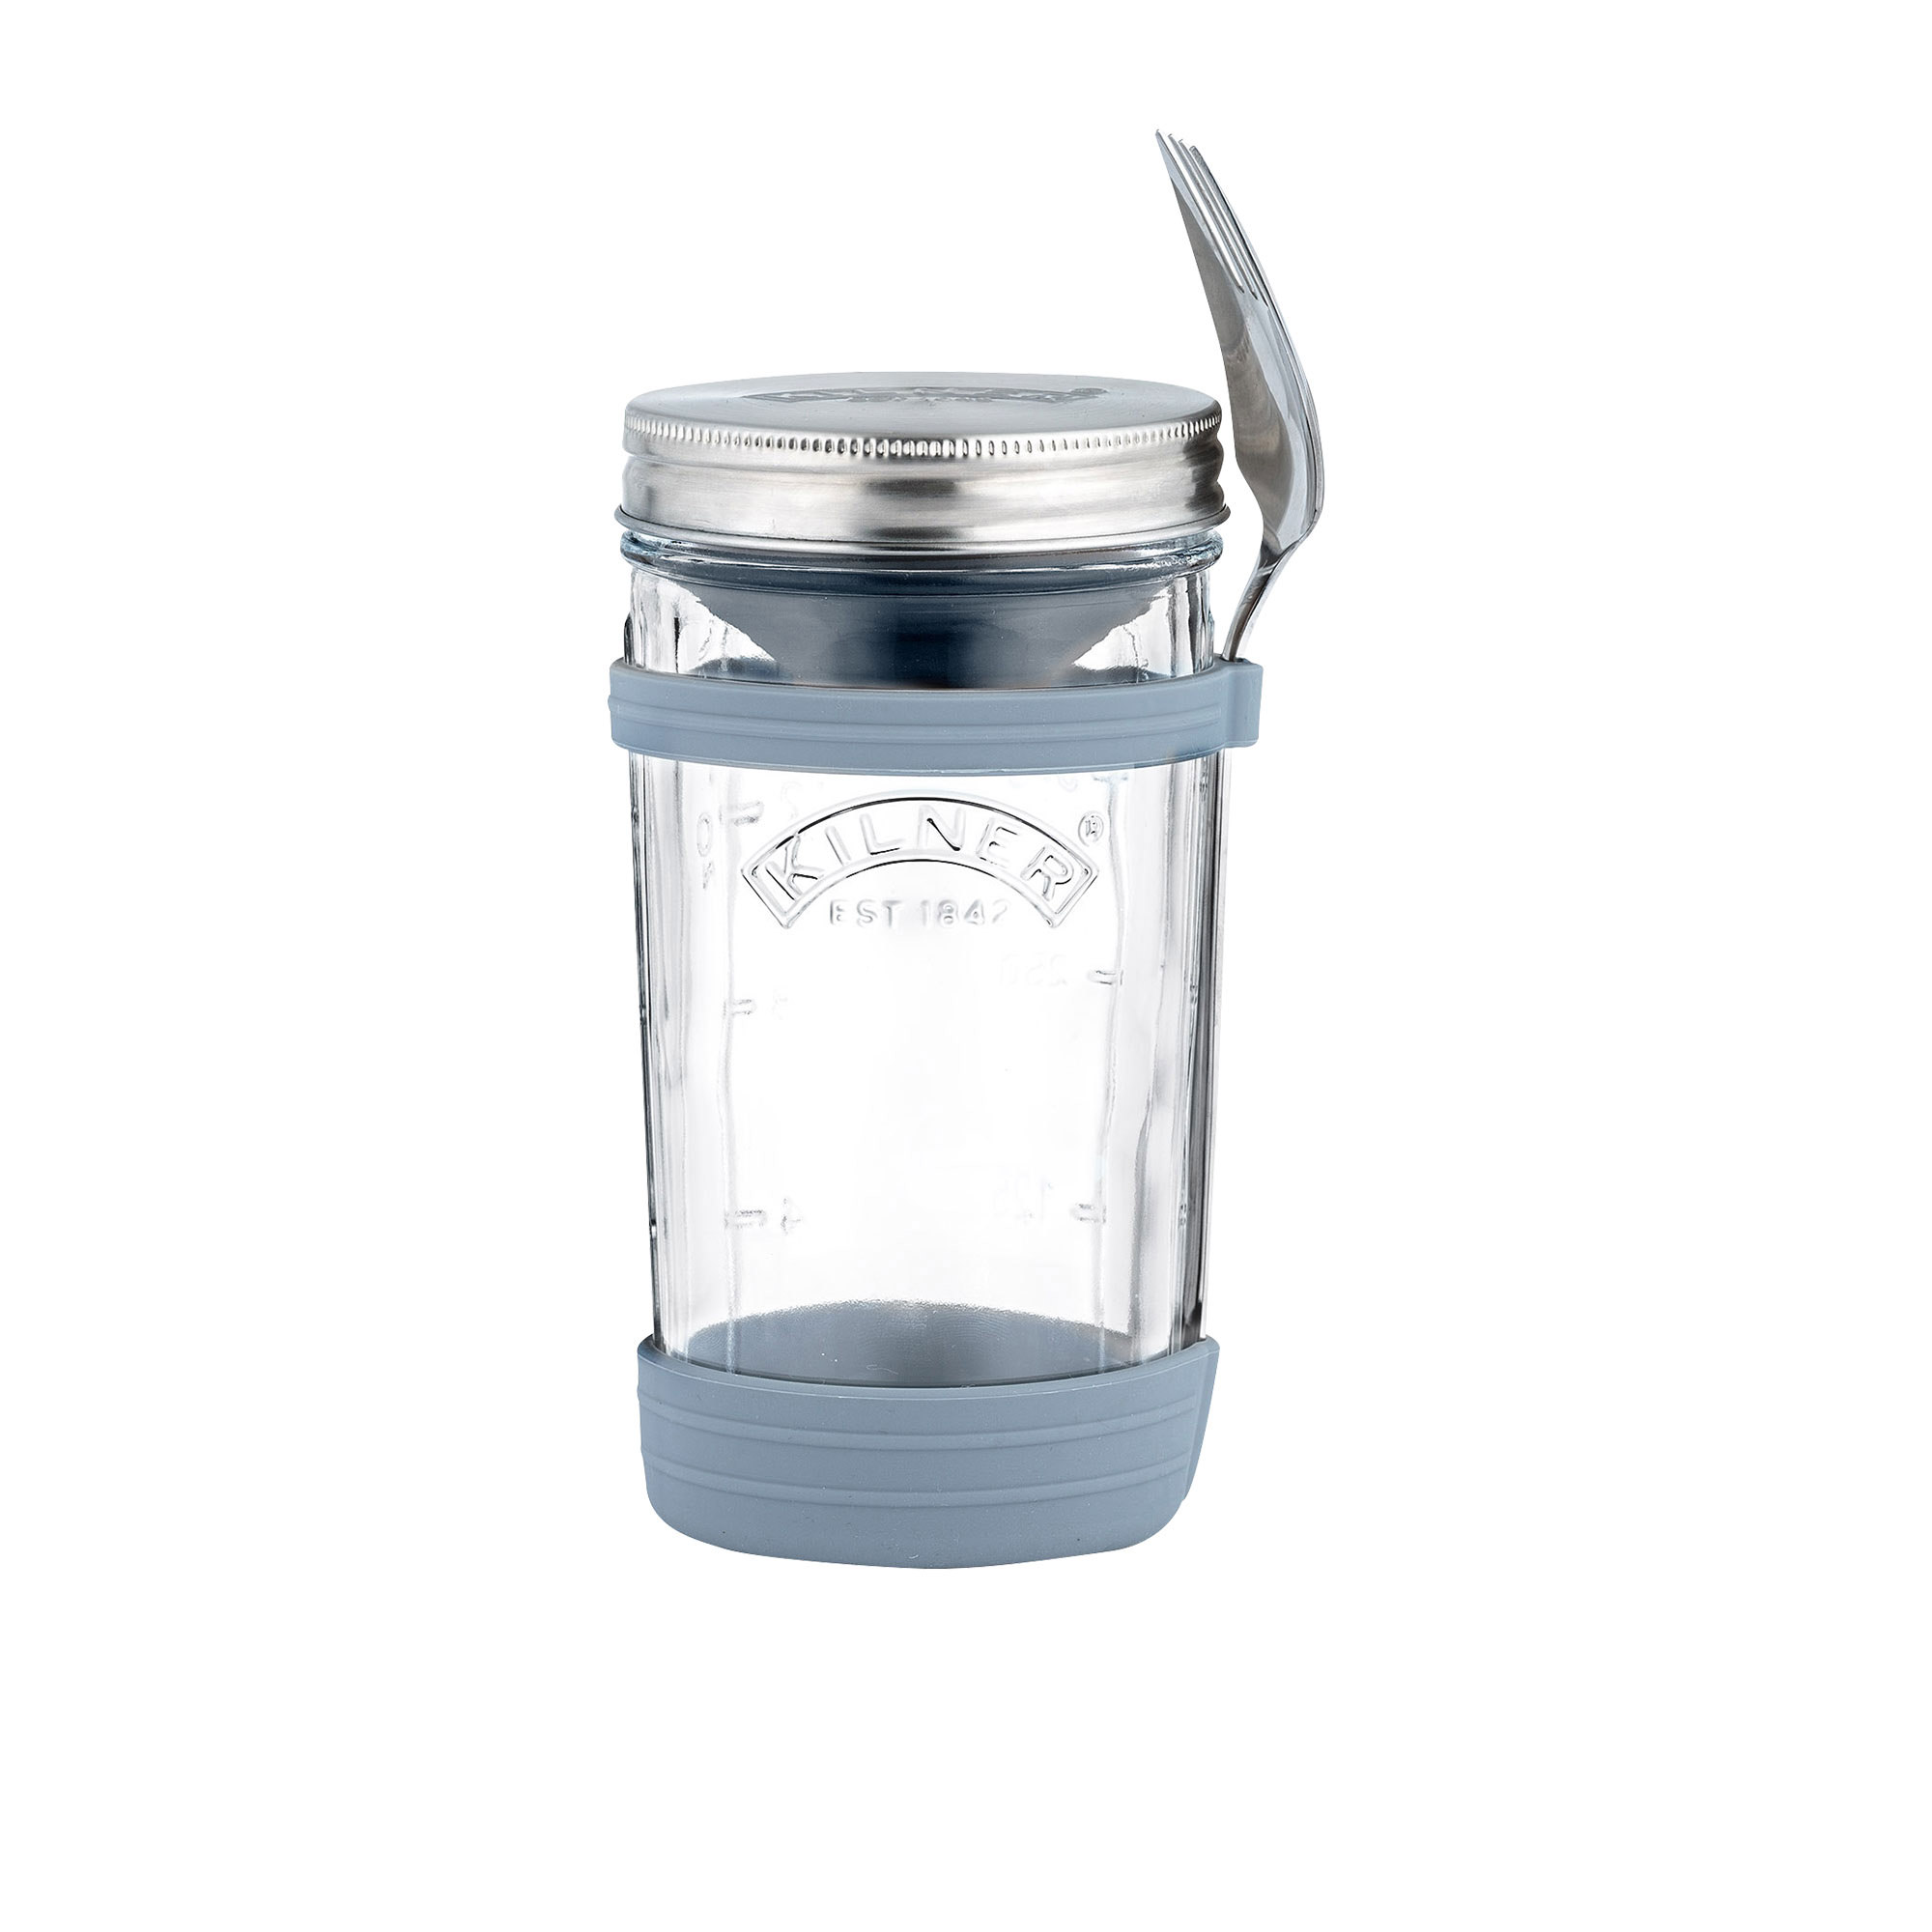 Kilner All In One Food To Go Set 500ml